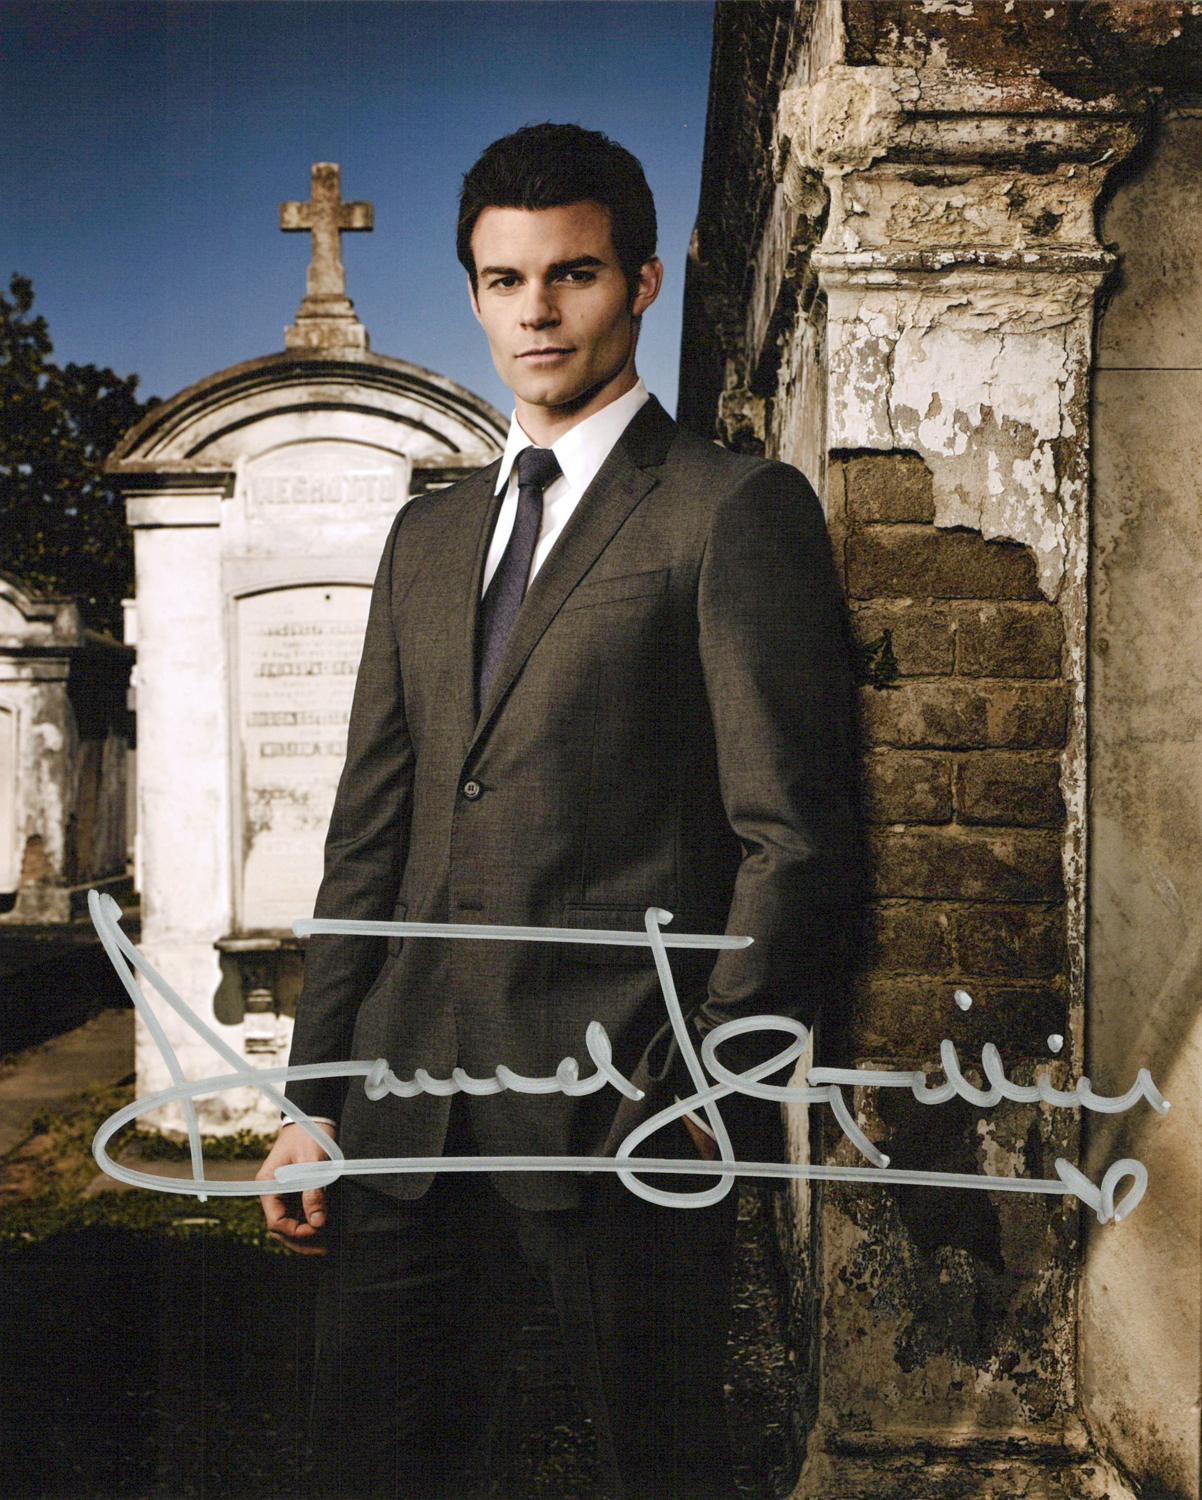 Daniel Gillies Original Autogramm auf Foto 20x25cm - The Originals/ The Vampire Diaries